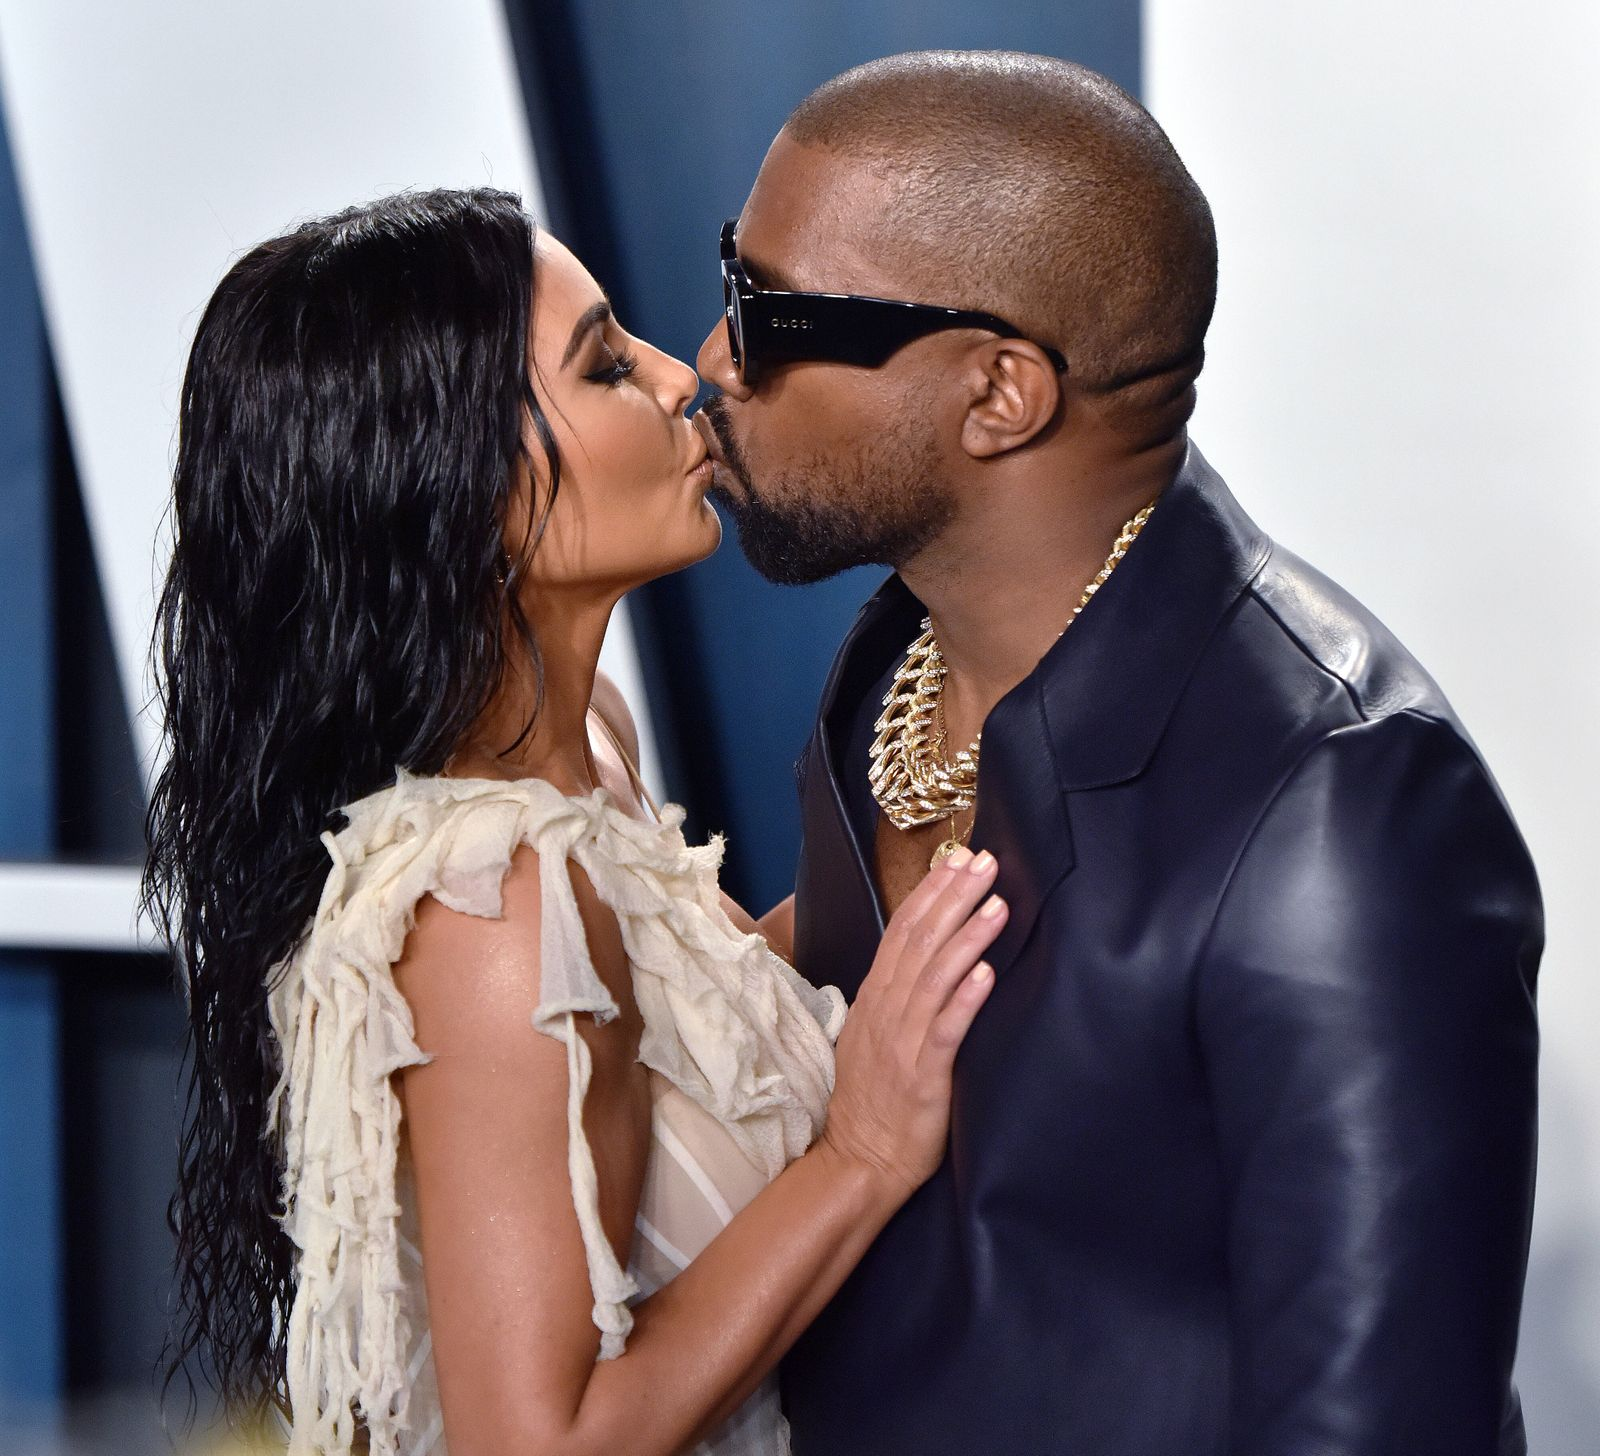 Kim Kardashian (L) and Kanye West kiss as they arrive for the Vanity Fair Oscar party at the Wallis Annenberg Center for